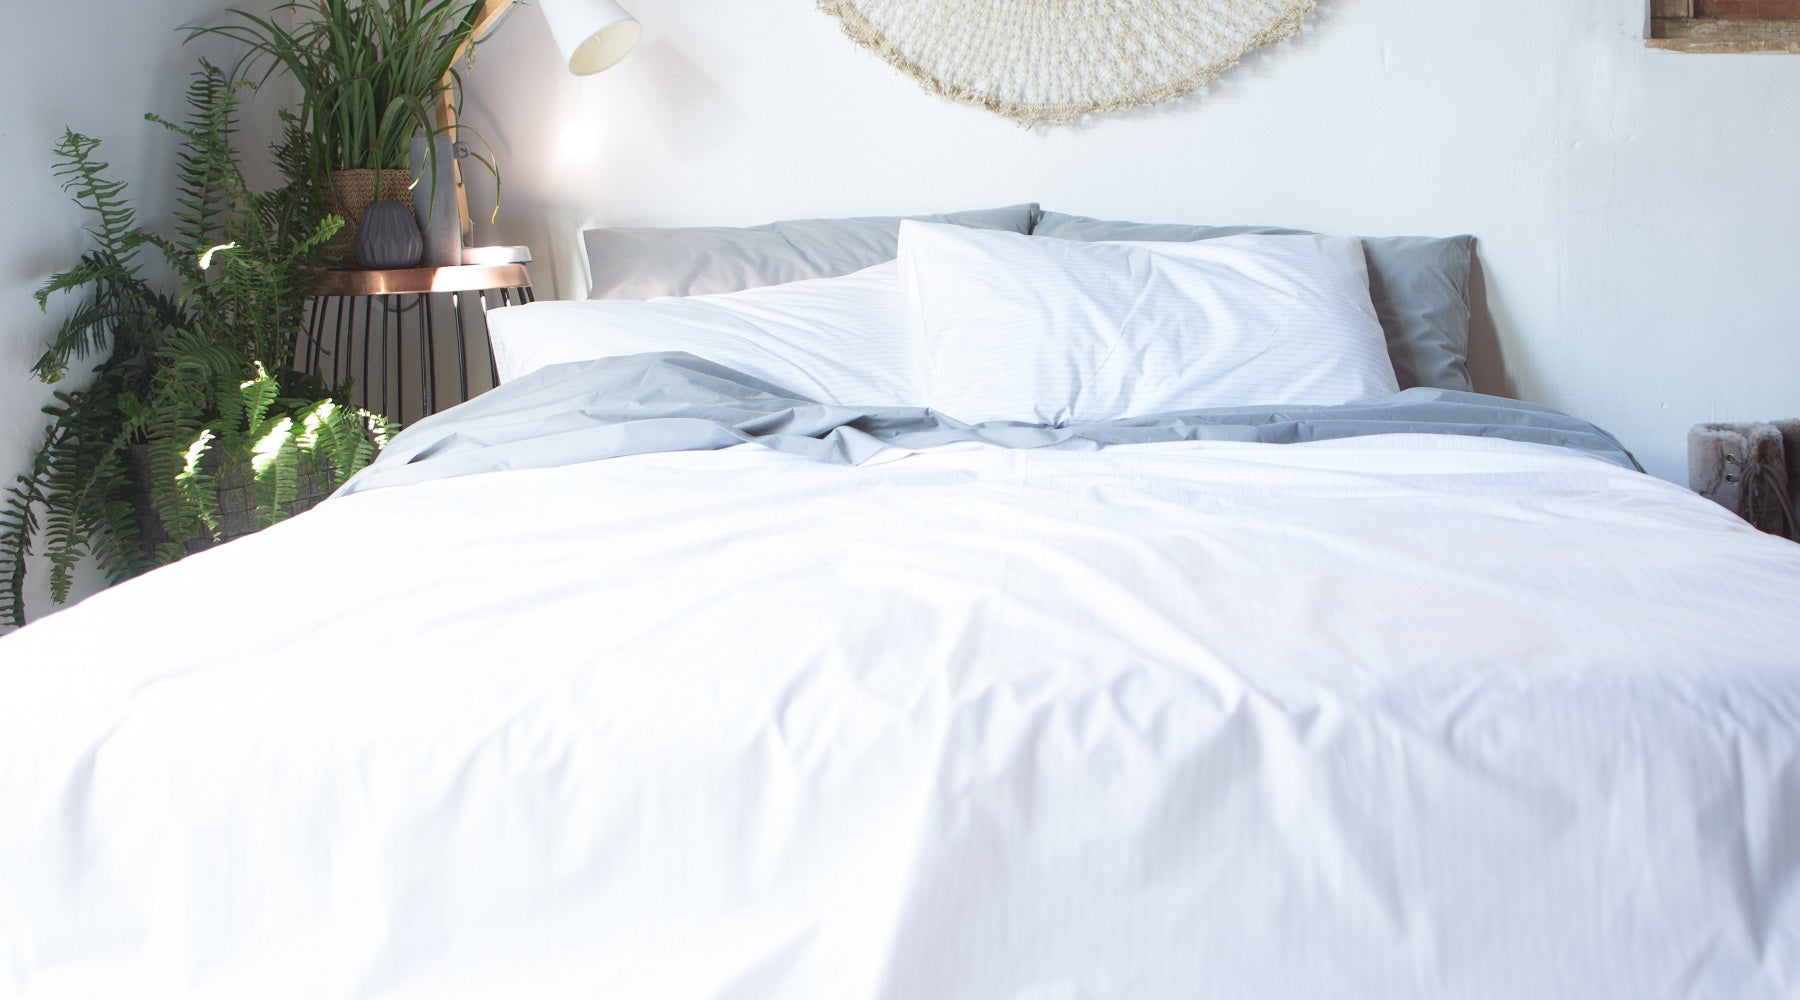 How To Keep Your Bed Sheets White And Bright The Good Sheet